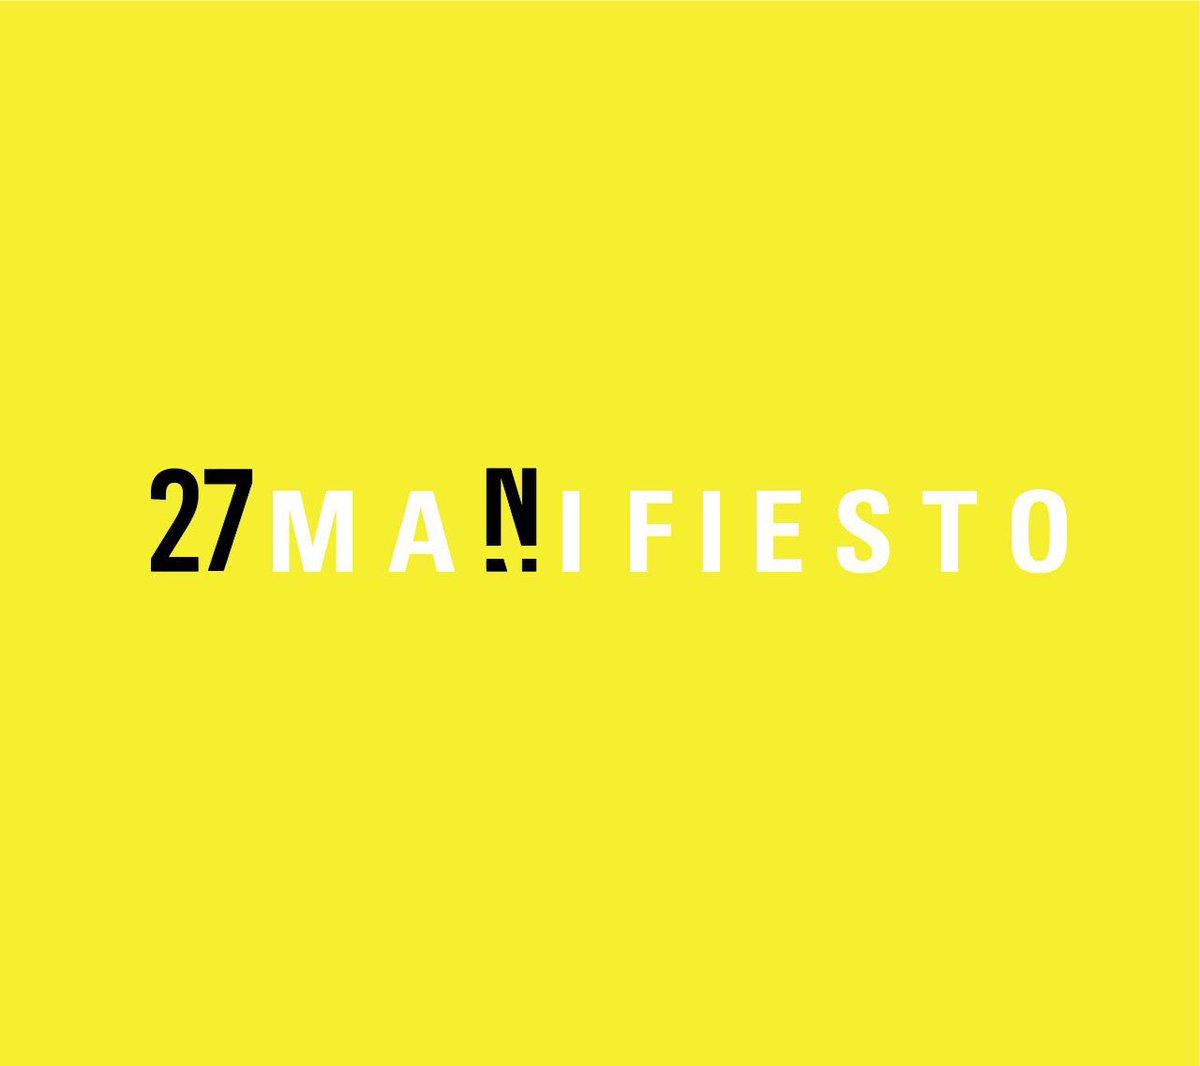 . @27Ncuba #manifesto calling for an inclusive and democratic country and appealing for the end of the abusive practices of power violating #humanrights including freedom of expression of dissident voices. #FreedomofArtisticExpression